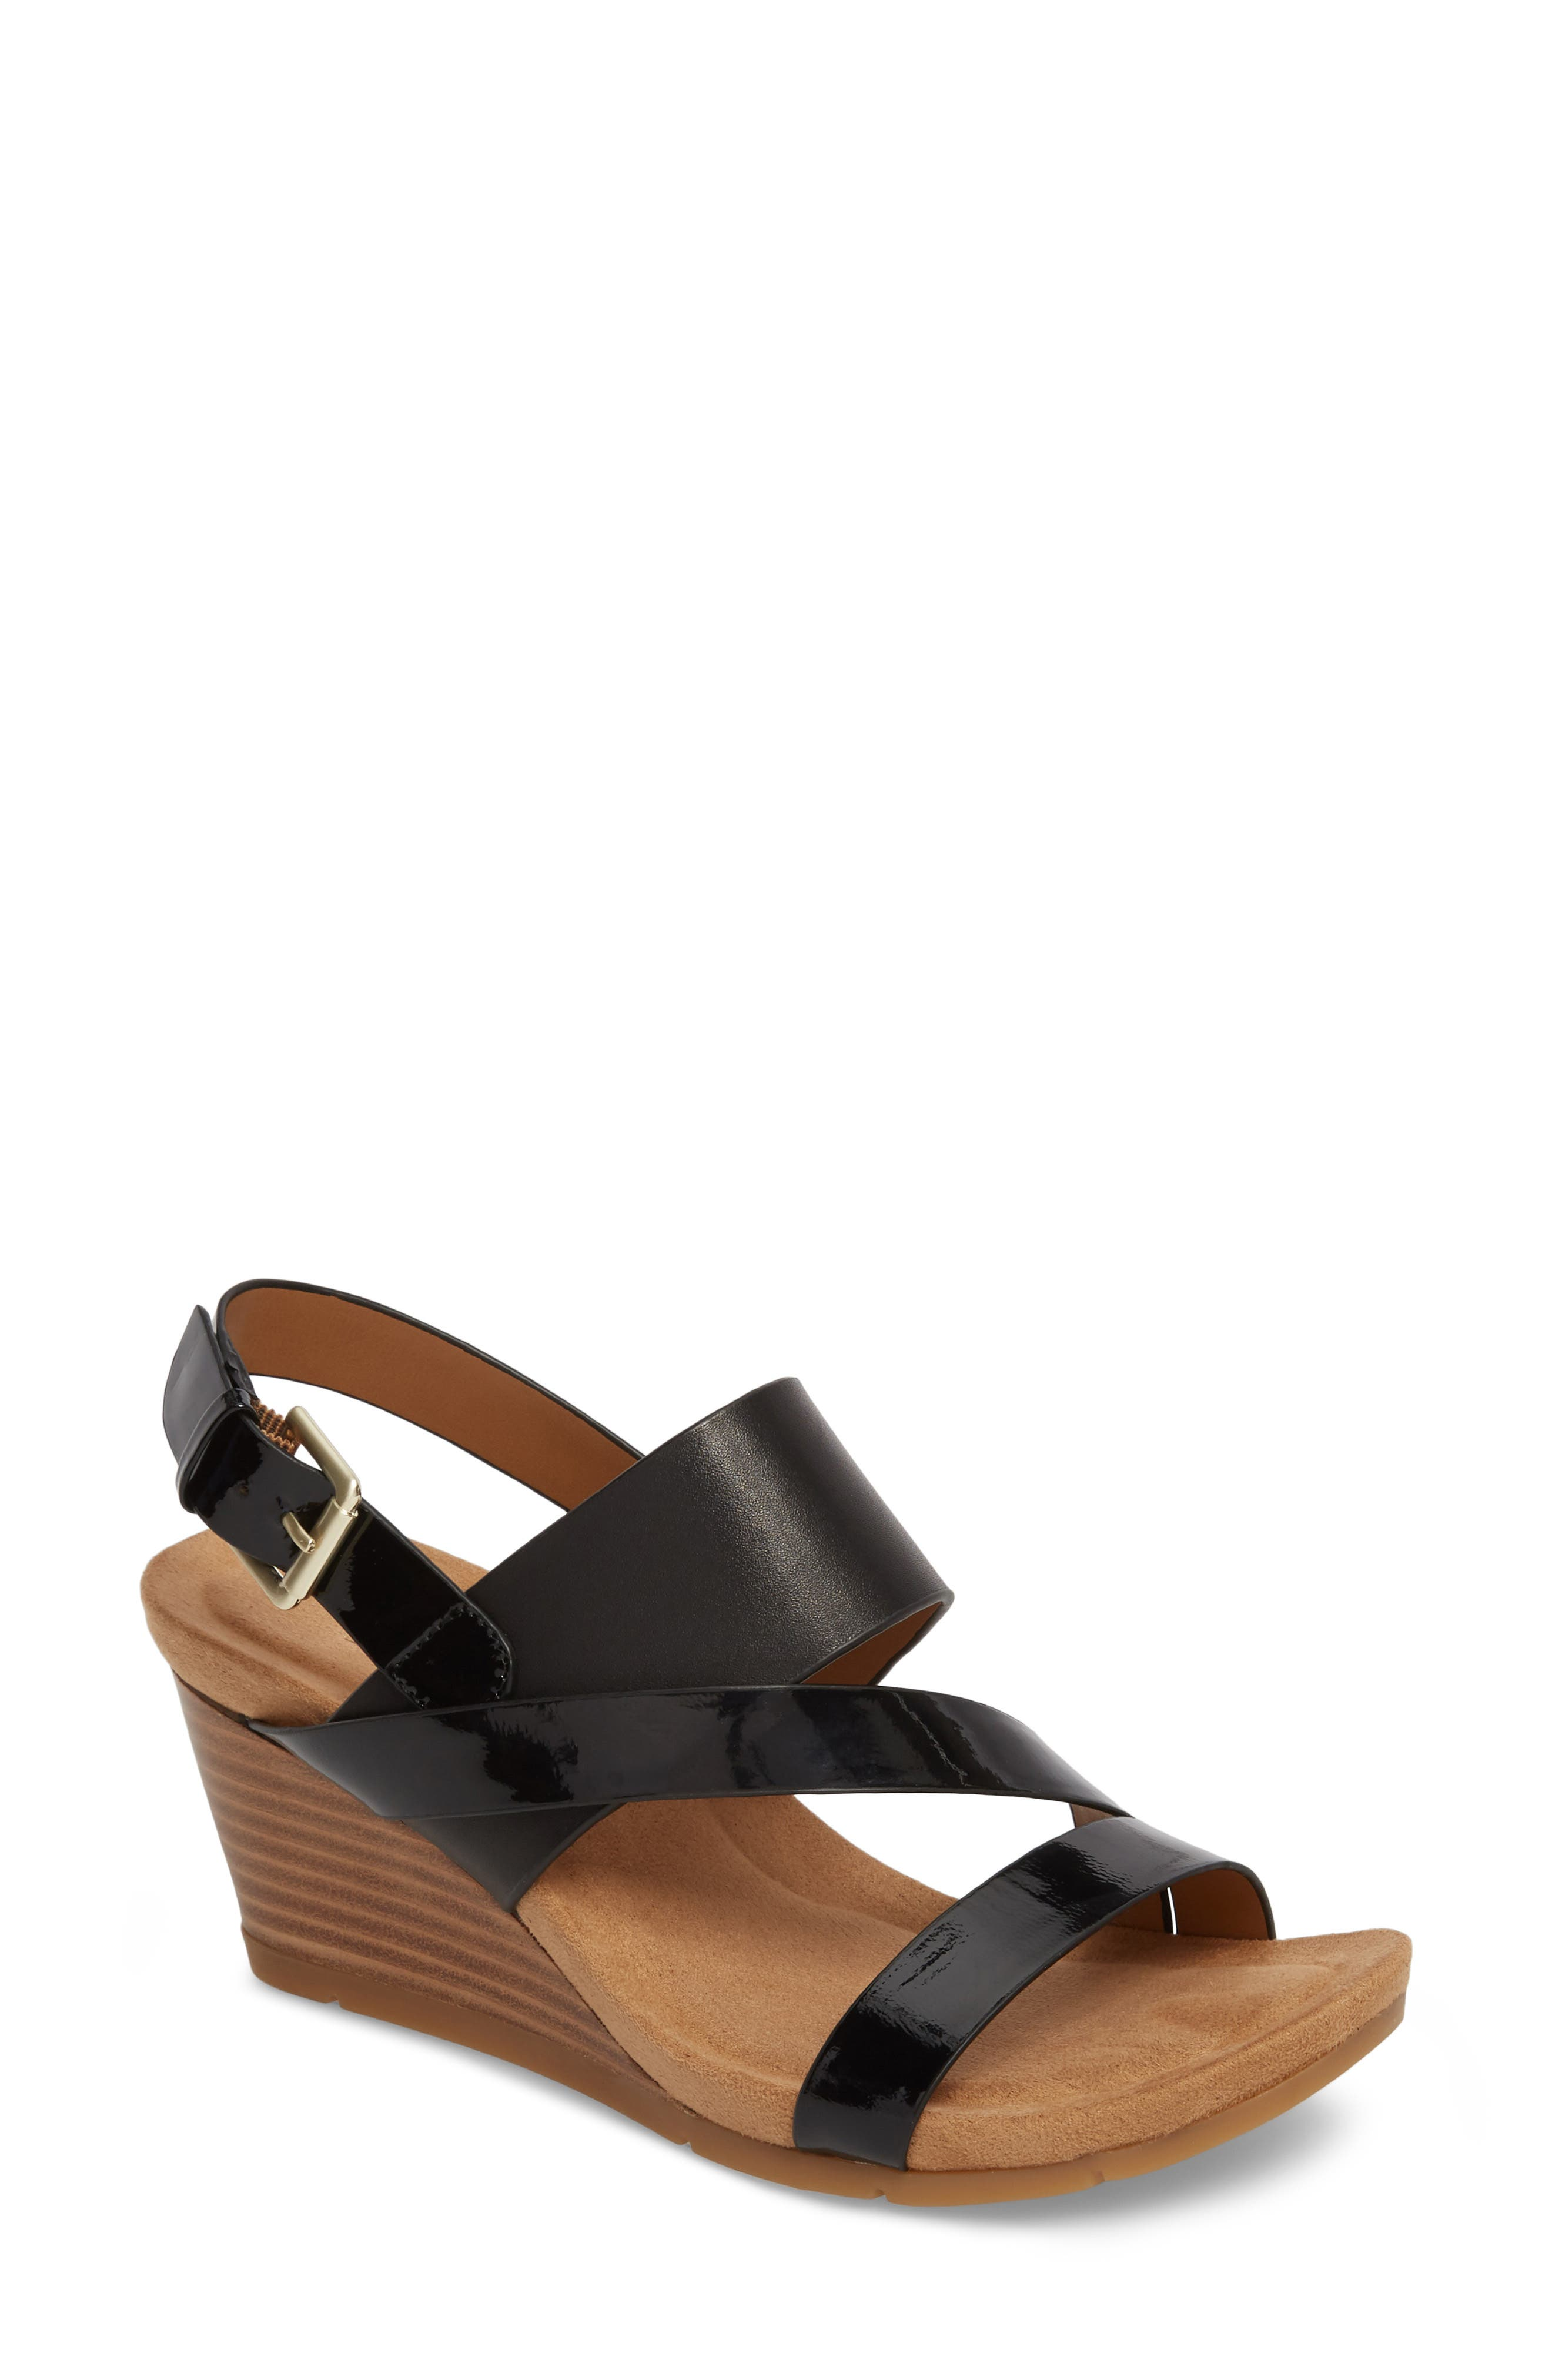 Vail Wedge Sandal,                             Main thumbnail 1, color,                             Black Leather